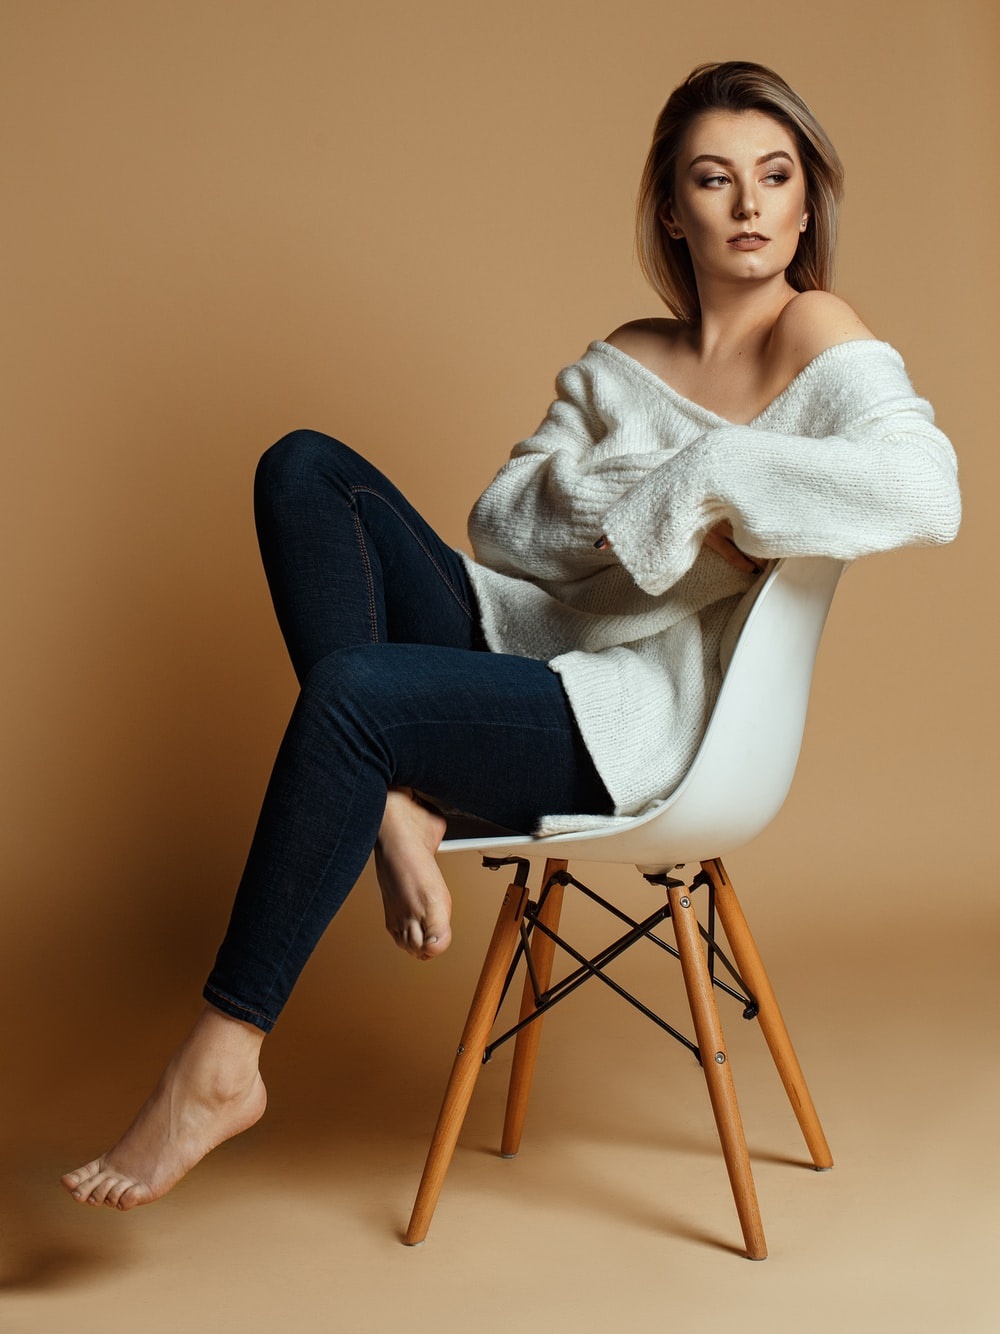 woman sitting on brown and white wooden chair